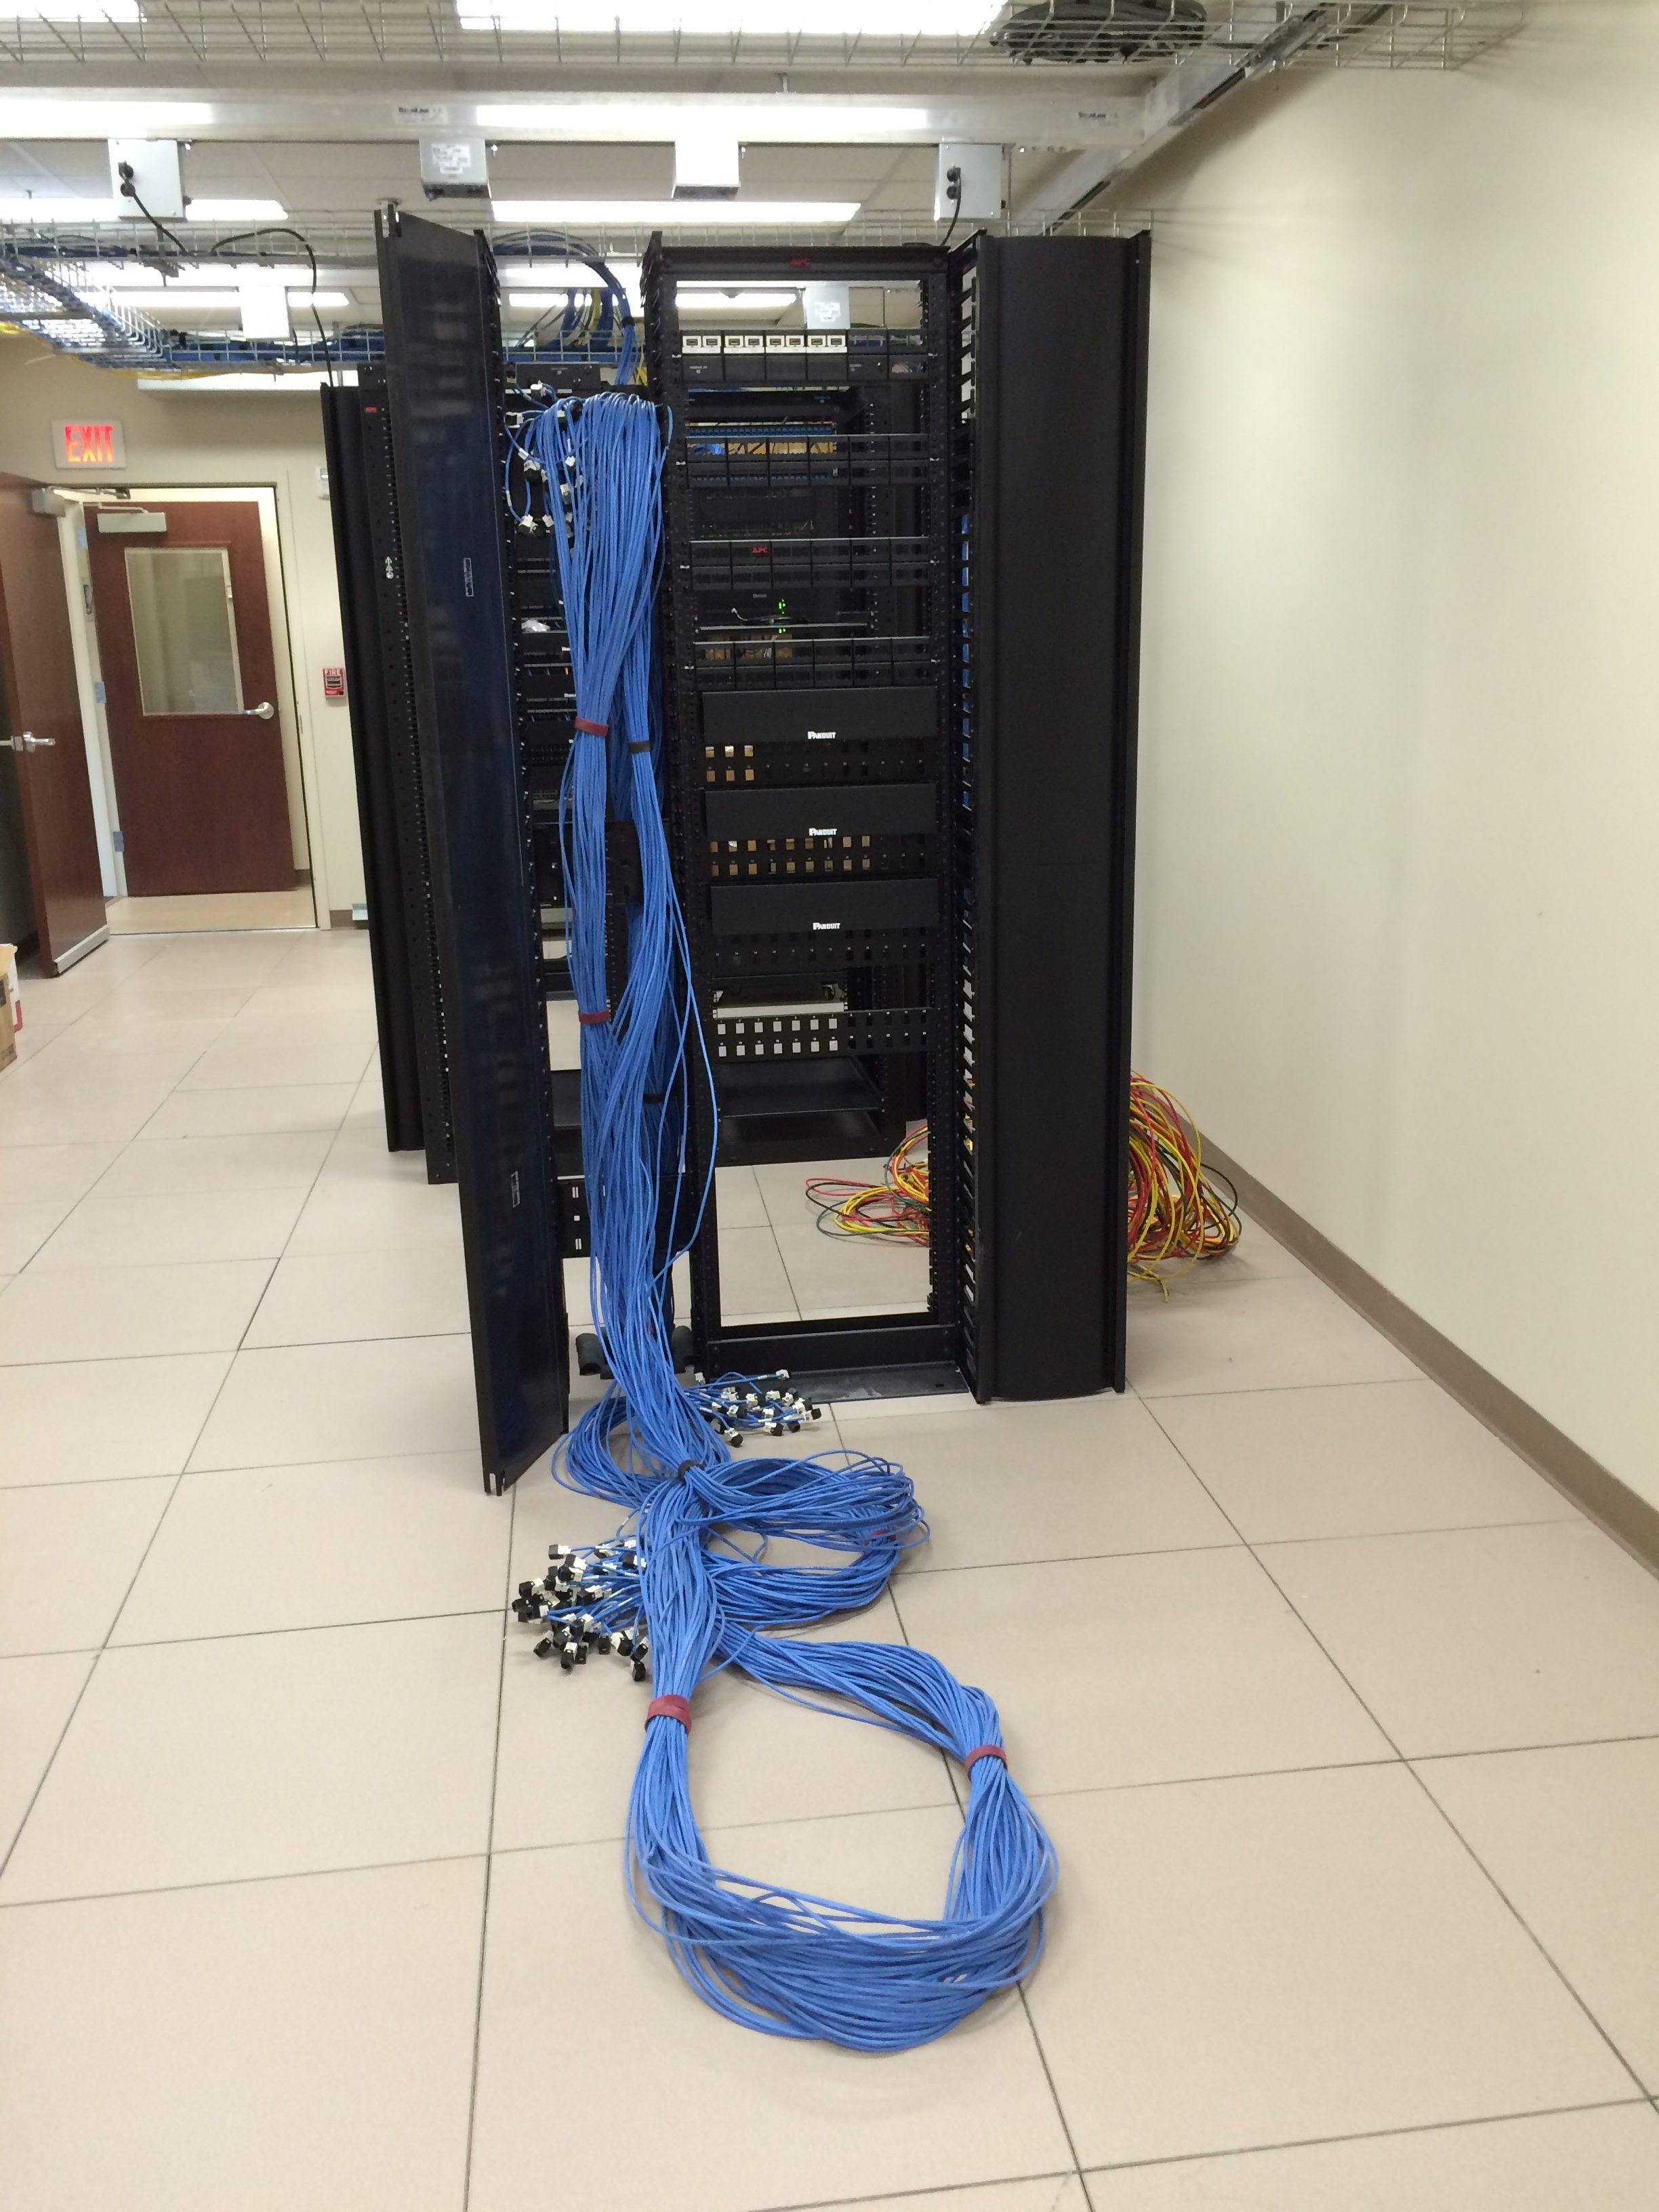 Cabling From Dispatch Consoles Back to Server Room